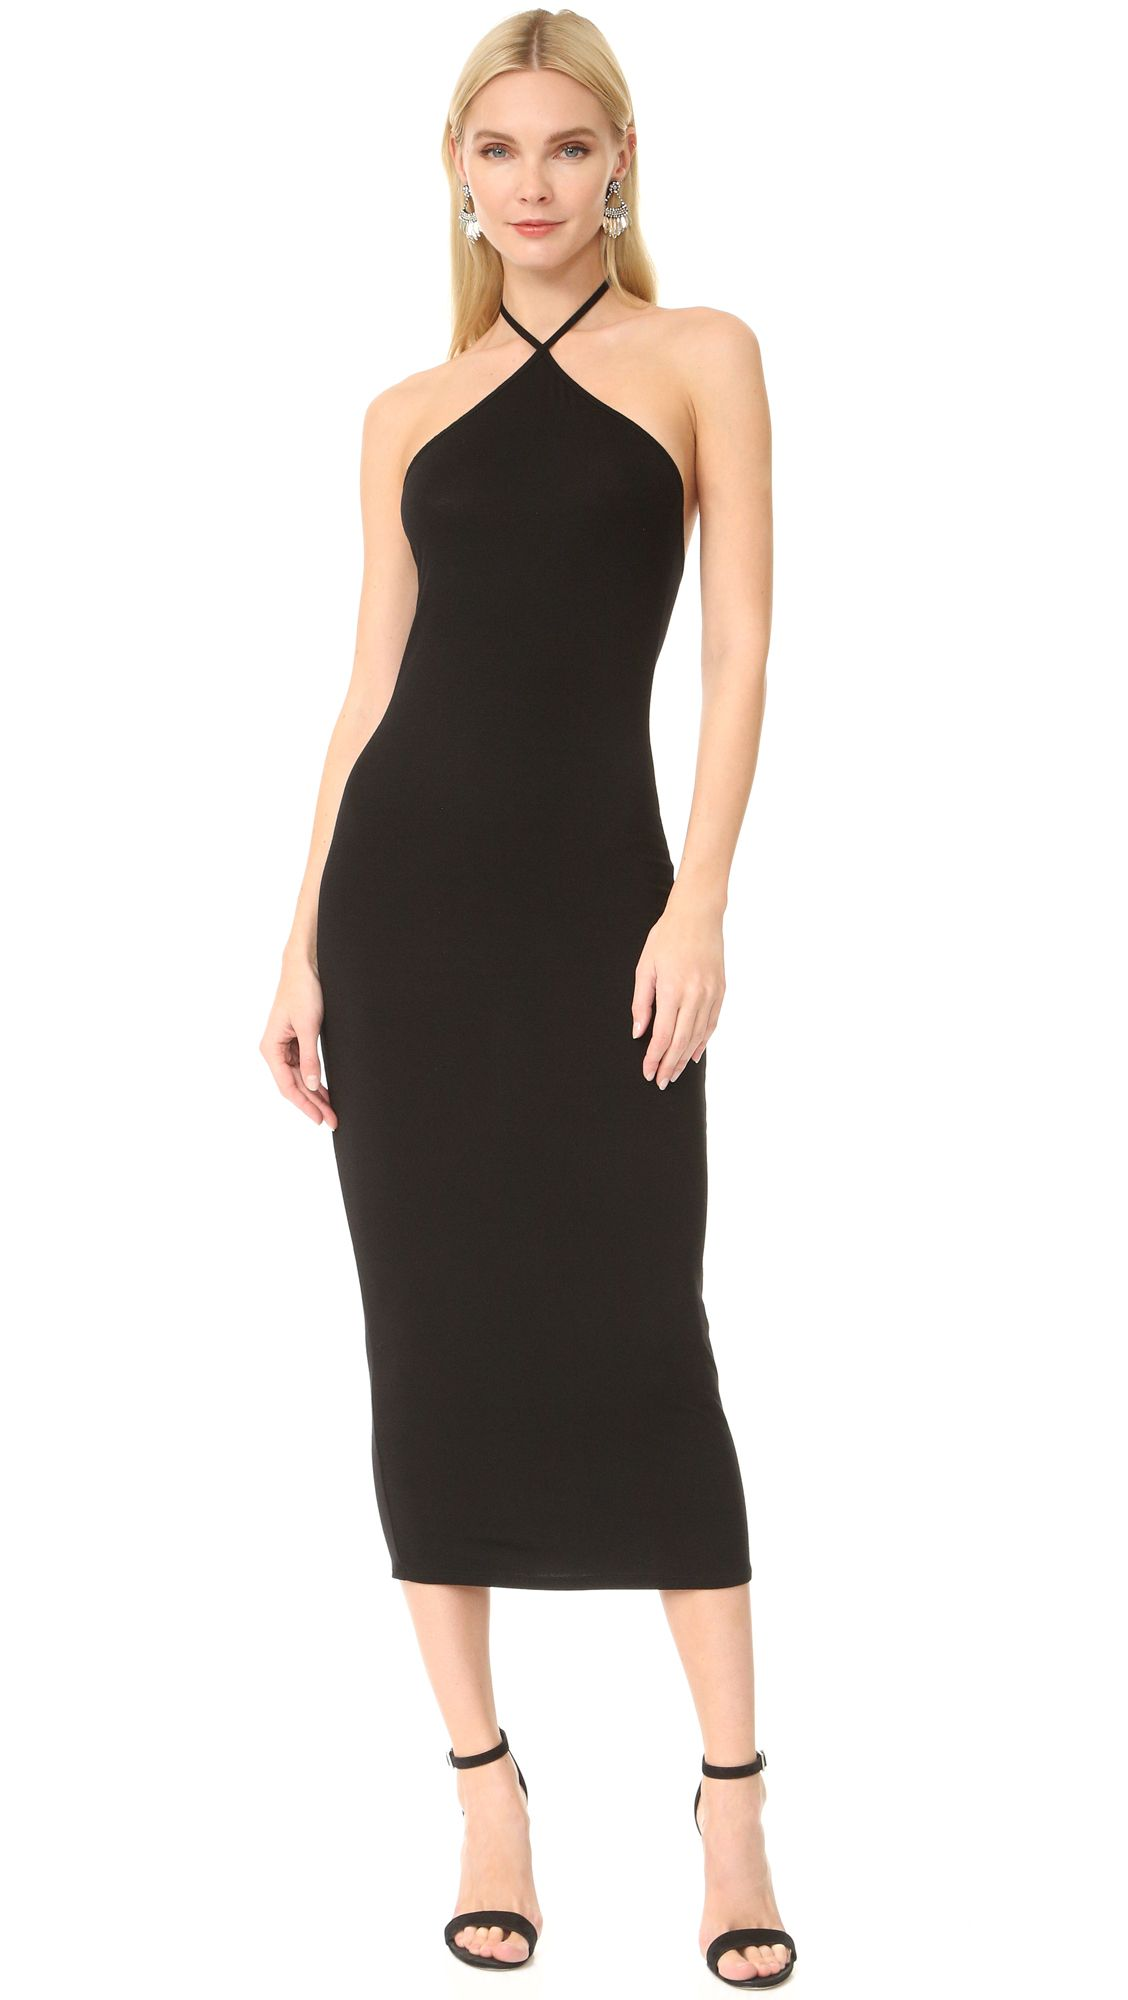 A black fitted dress